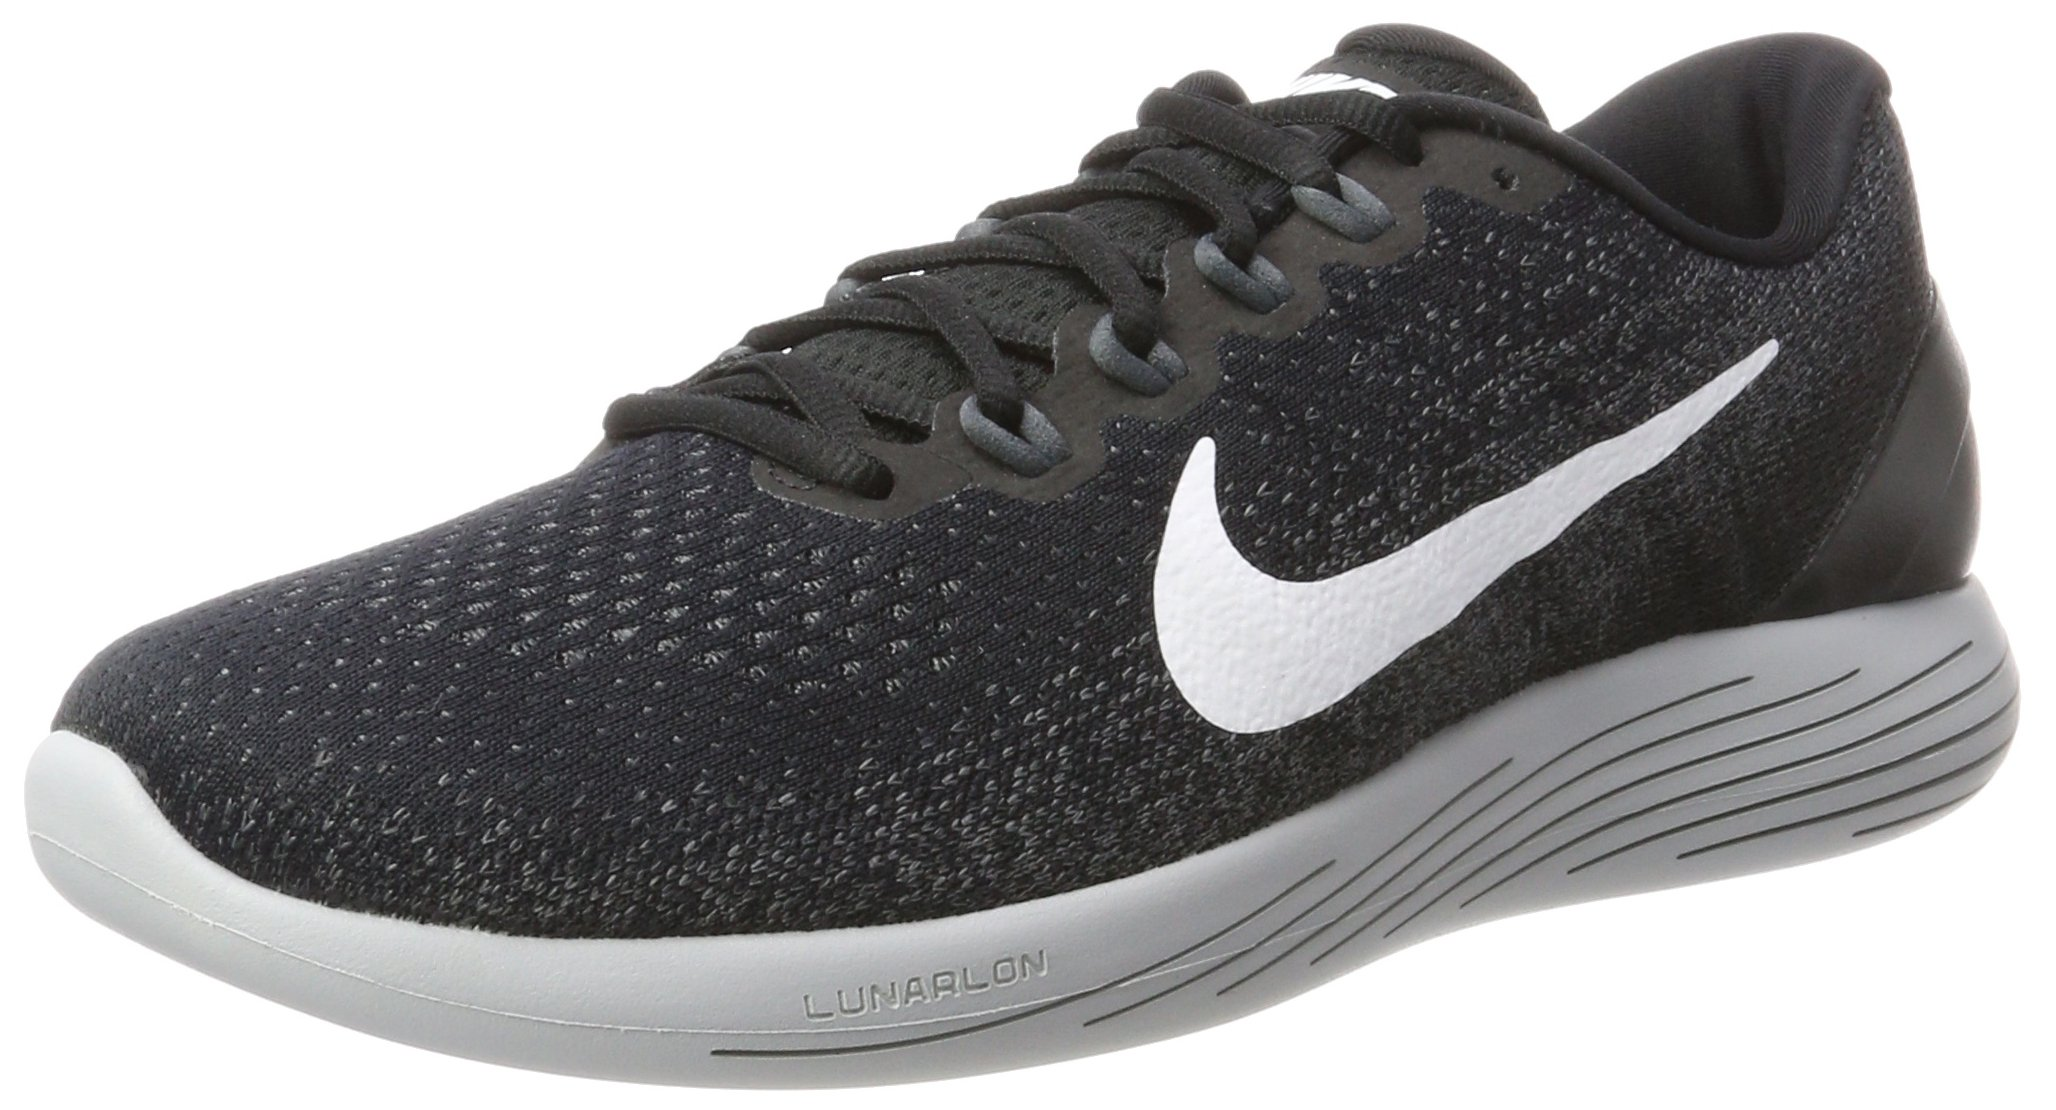 official photos 455cd fc2b1 Nike Men's Lunarglide 9 Running Shoe Black/White/Dark Grey/Wolf Grey Size  11 M US